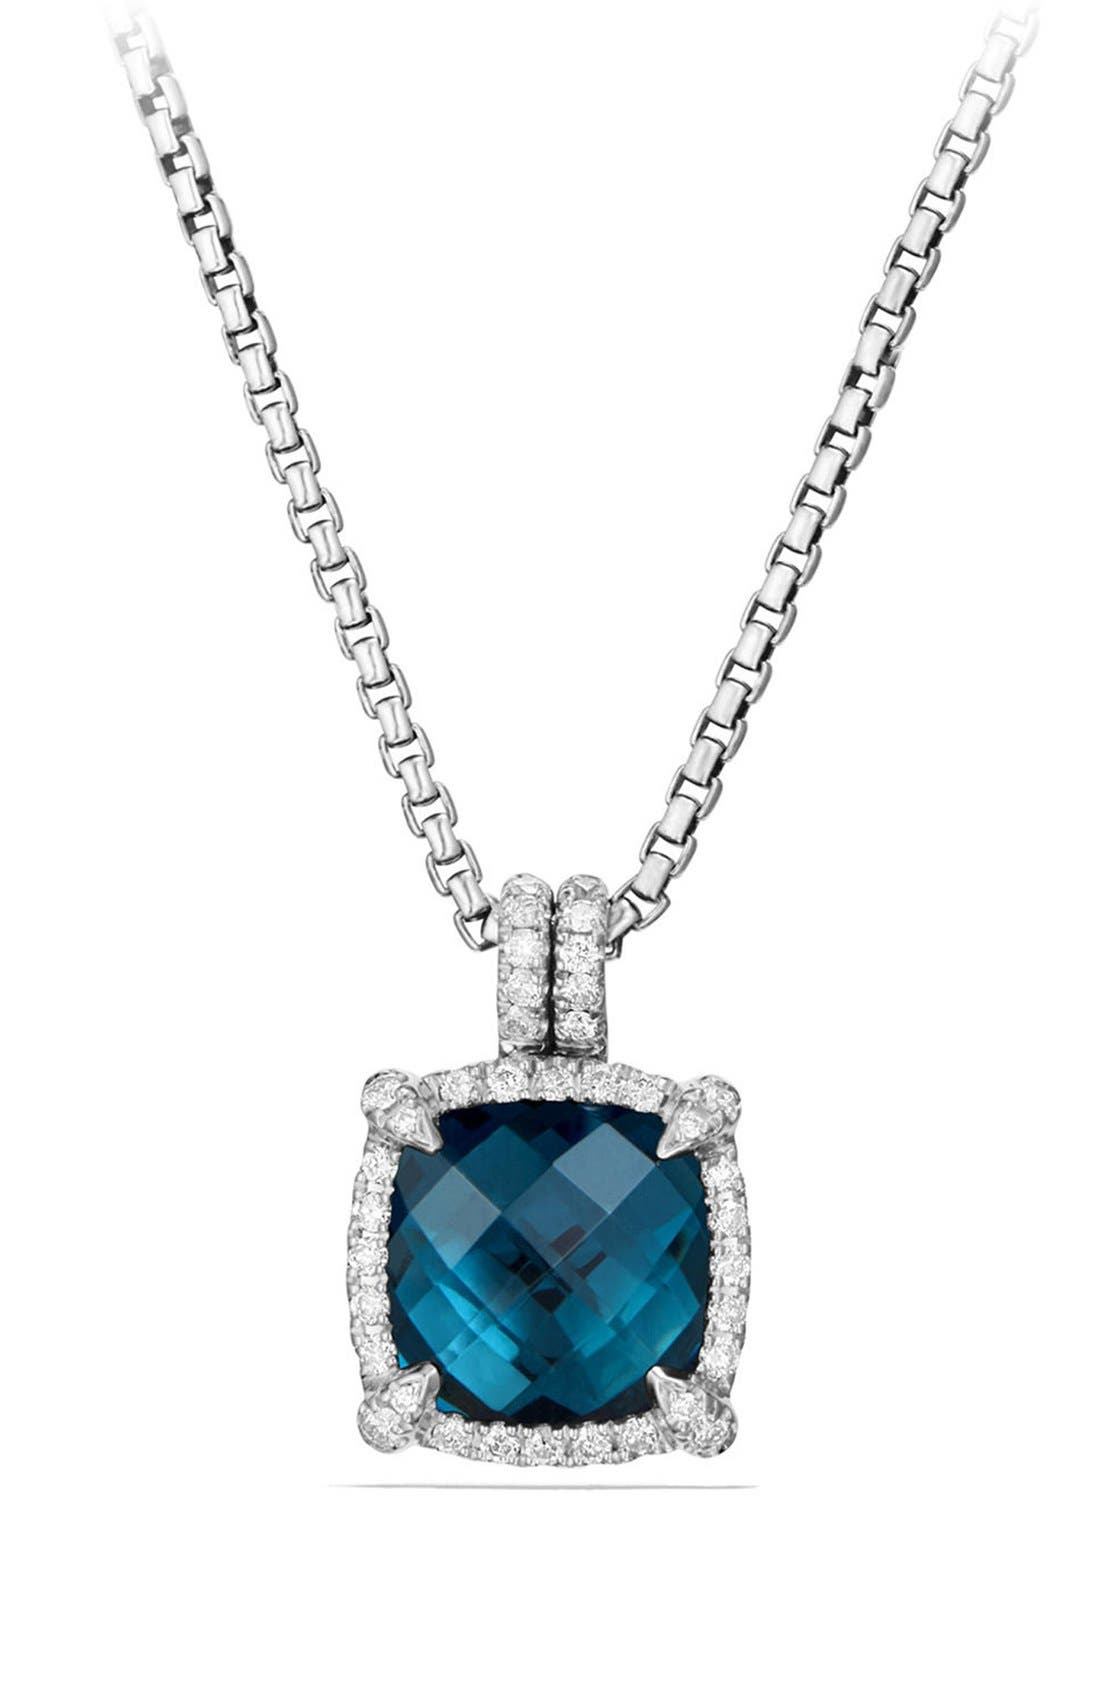 DAVID YURMAN 'Châtelaine' Small Pavé Bezel Pendant Necklace